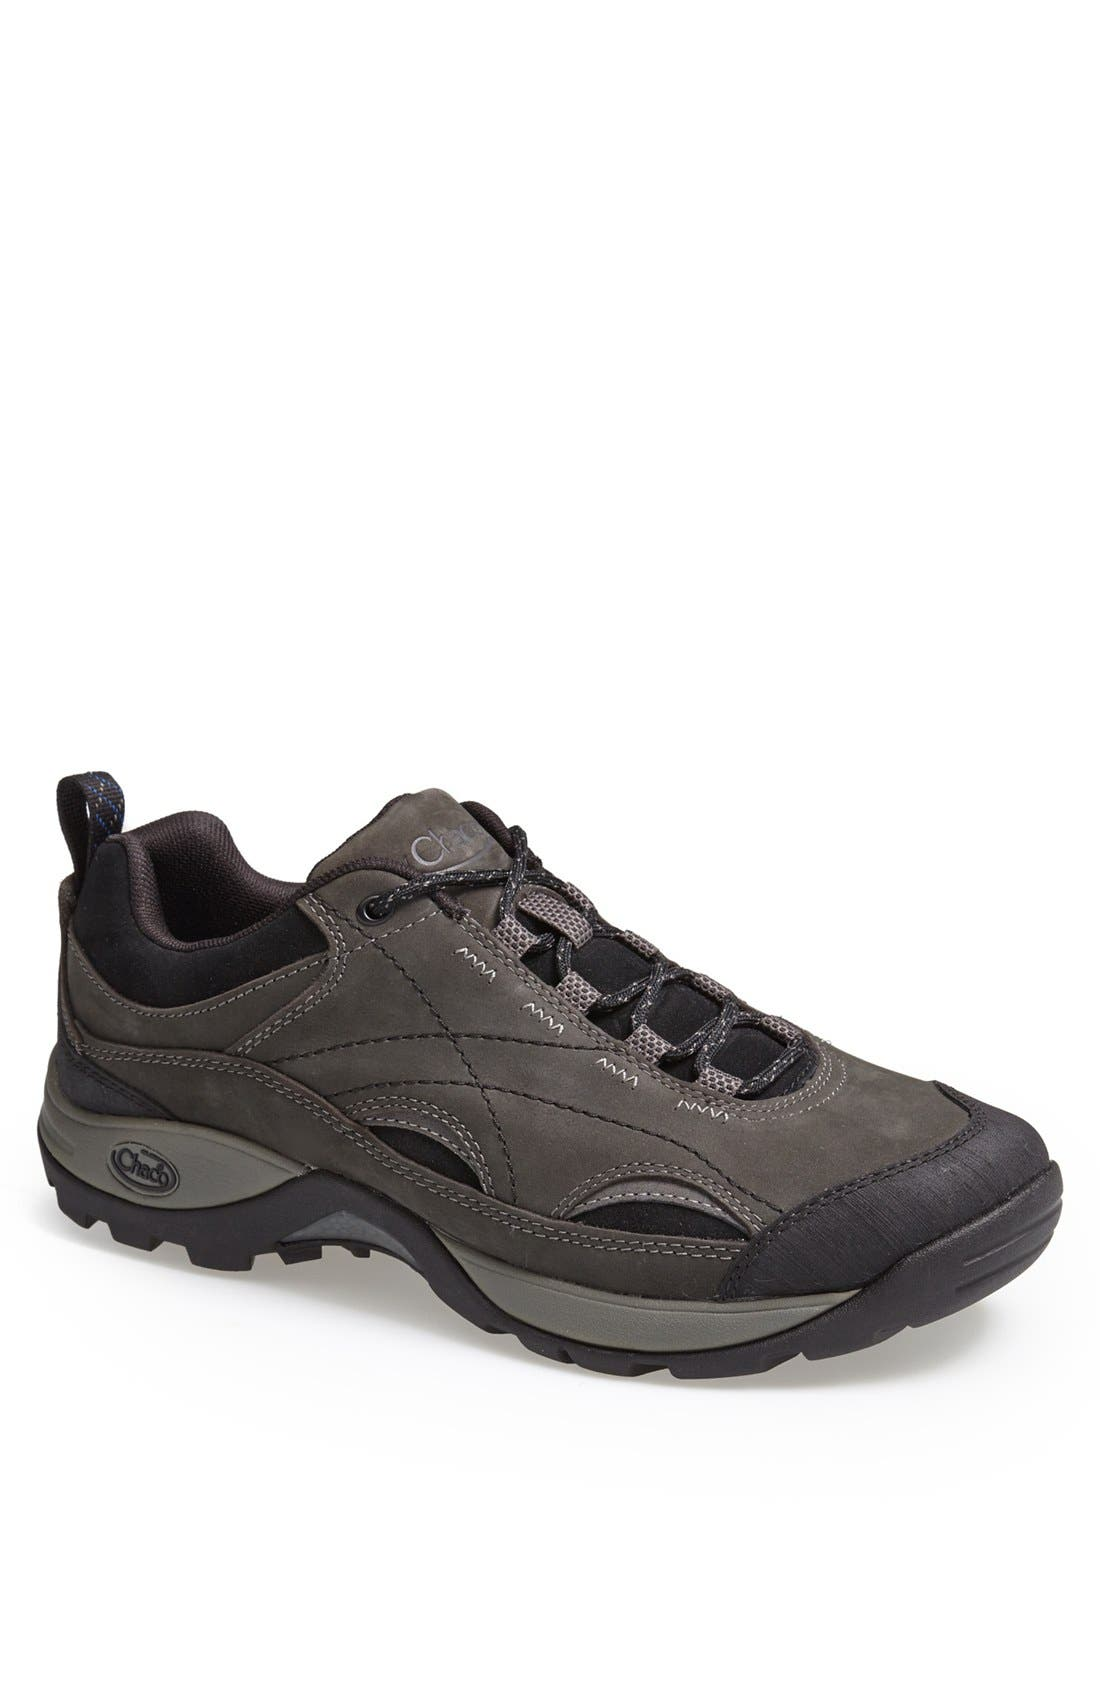 Alternate Image 1 Selected - Chaco 'Hinterland' Hiking Shoe   (Men)